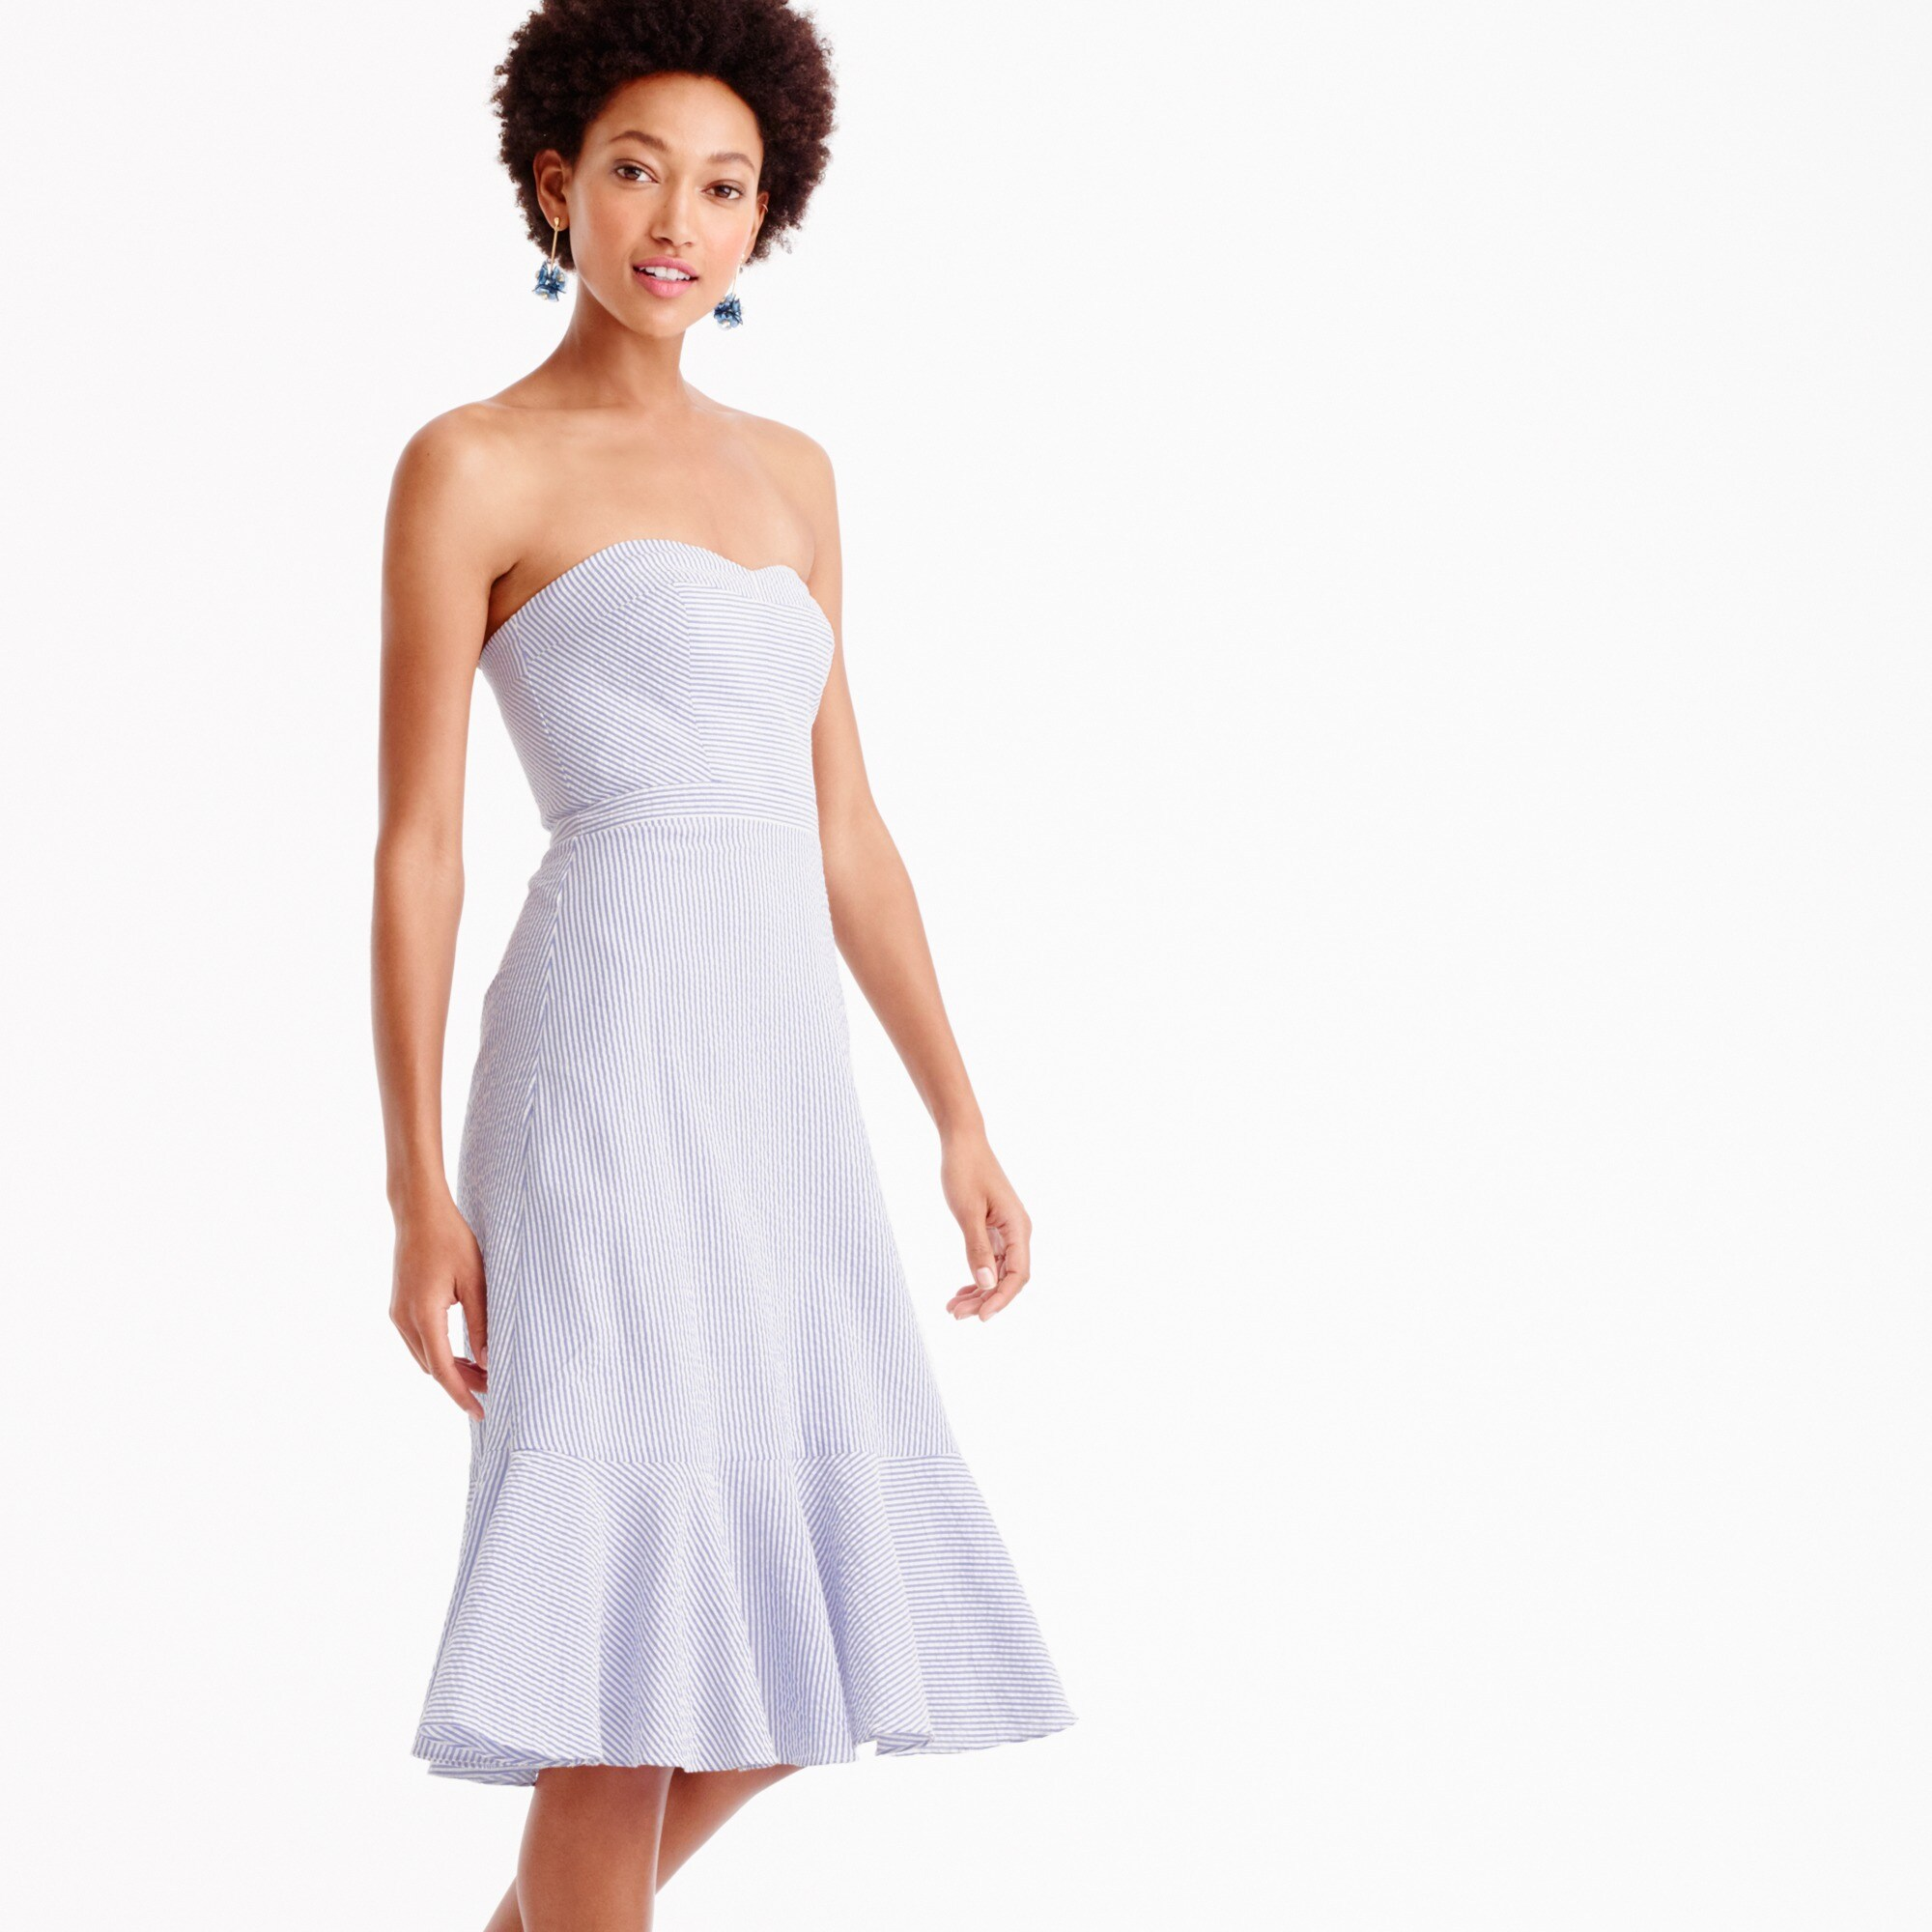 Strapless ruffle-hem dress in seersucker